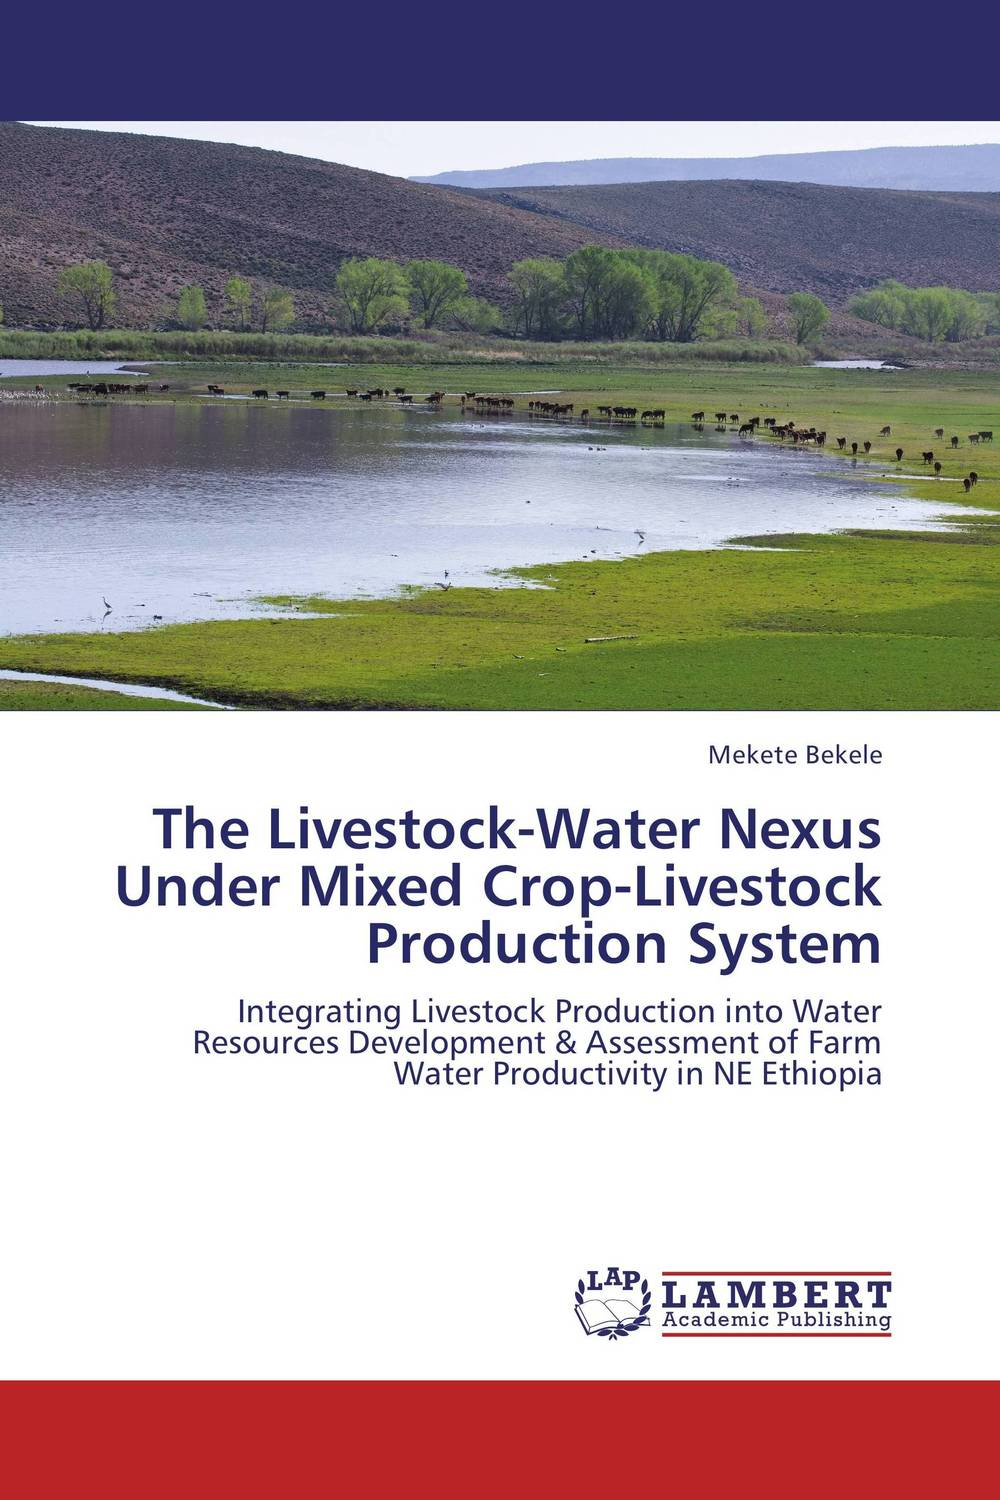 The Livestock-Water Nexus Under Mixed Crop-Livestock Production System тайна хрустального замка